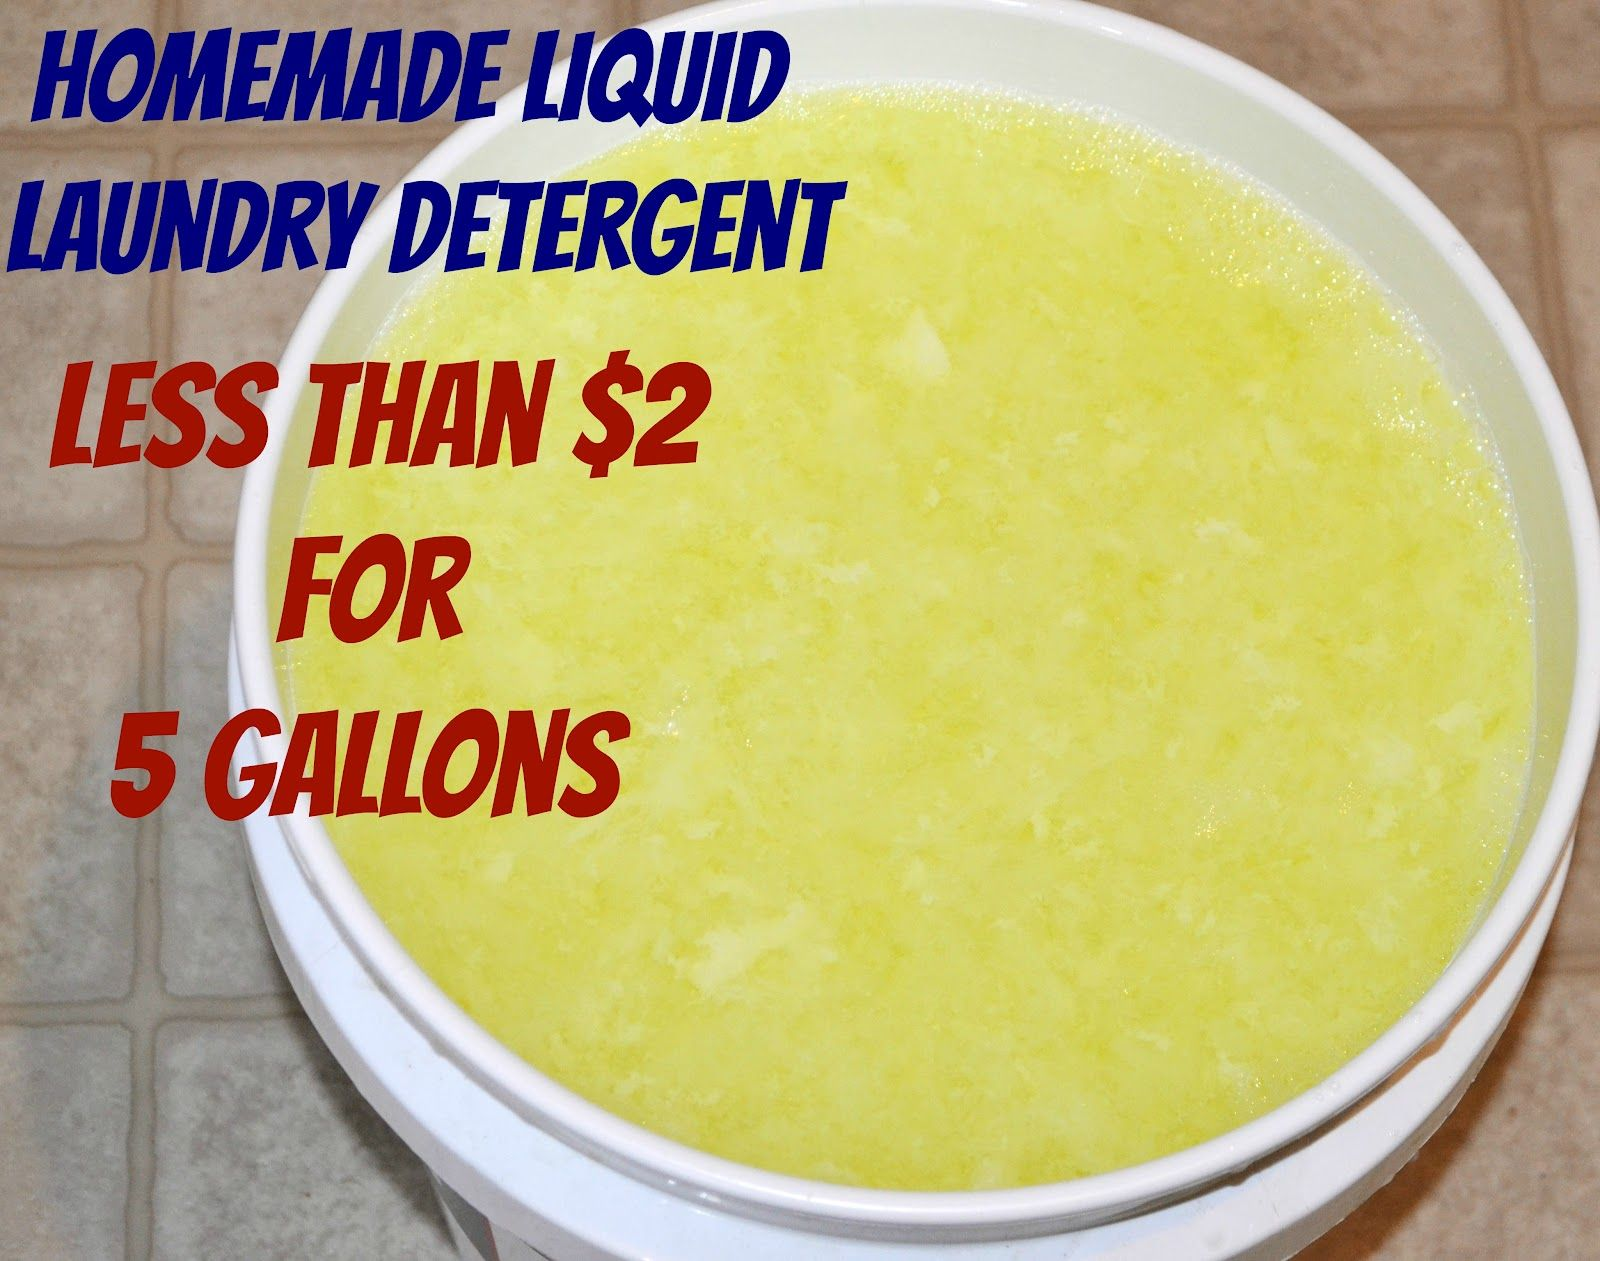 Homemade Liquid Laundry Detergent Less Than 2 For 5